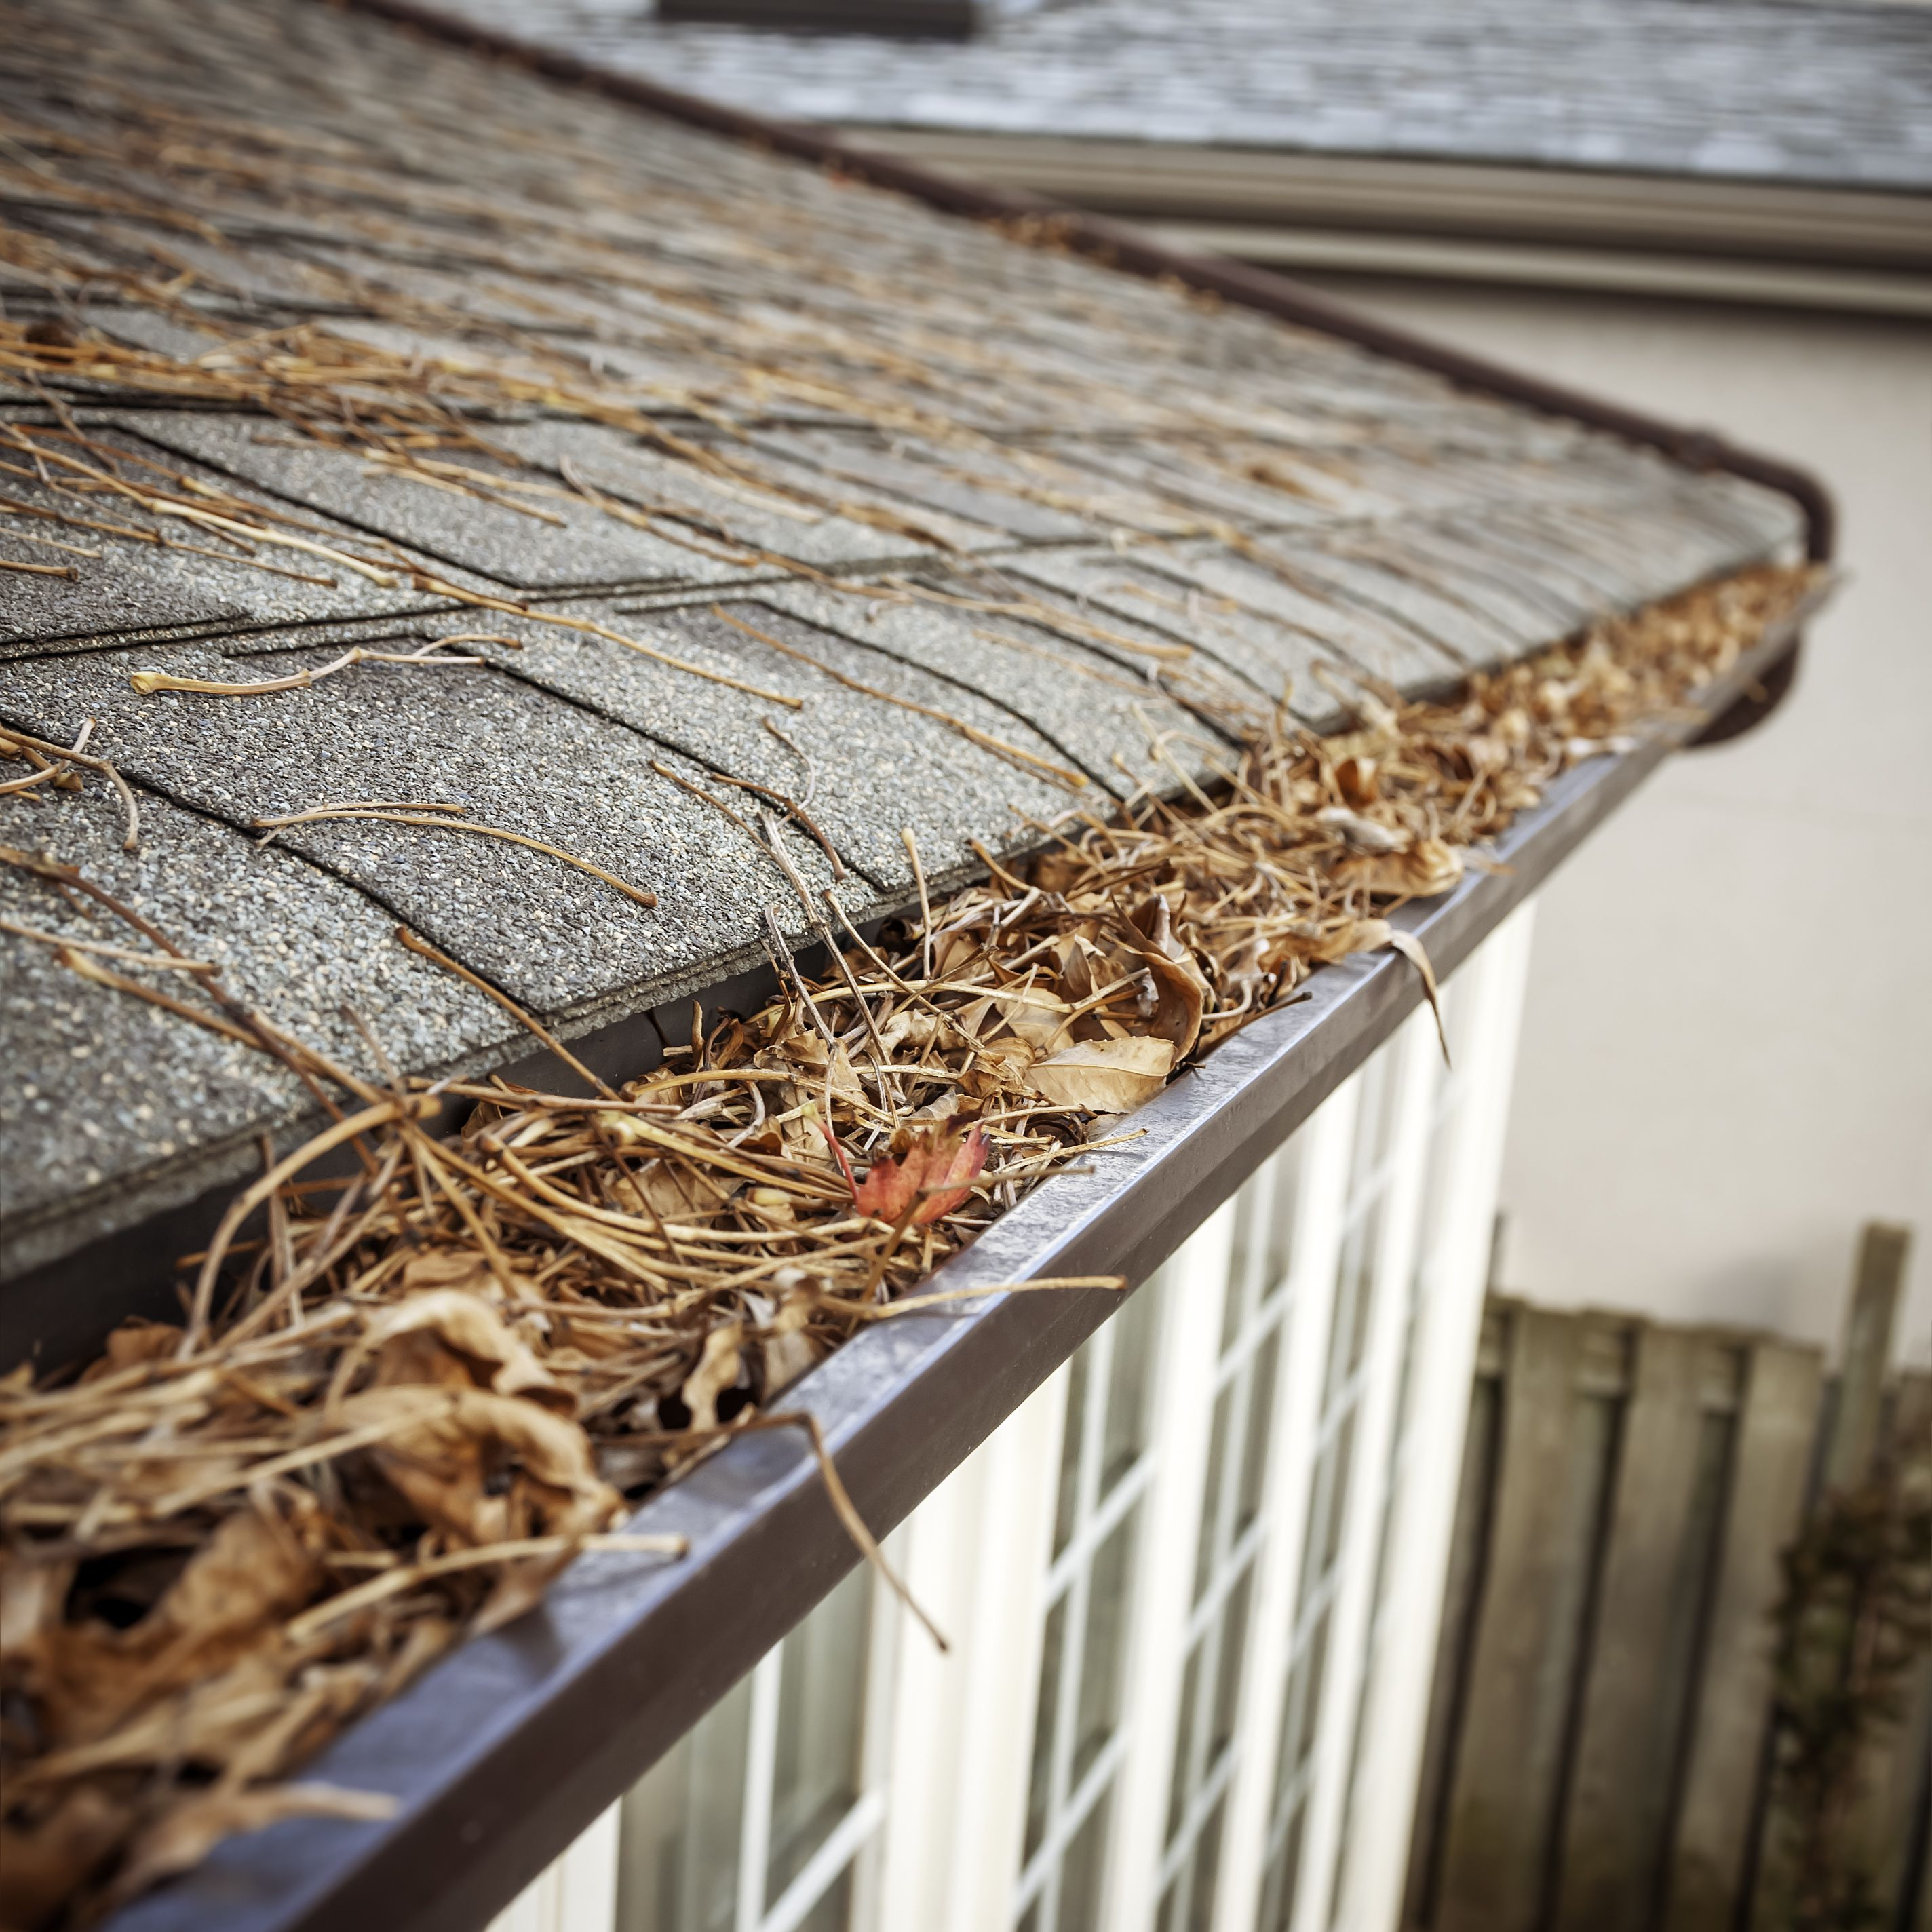 Spring Cleaning Home Gutters